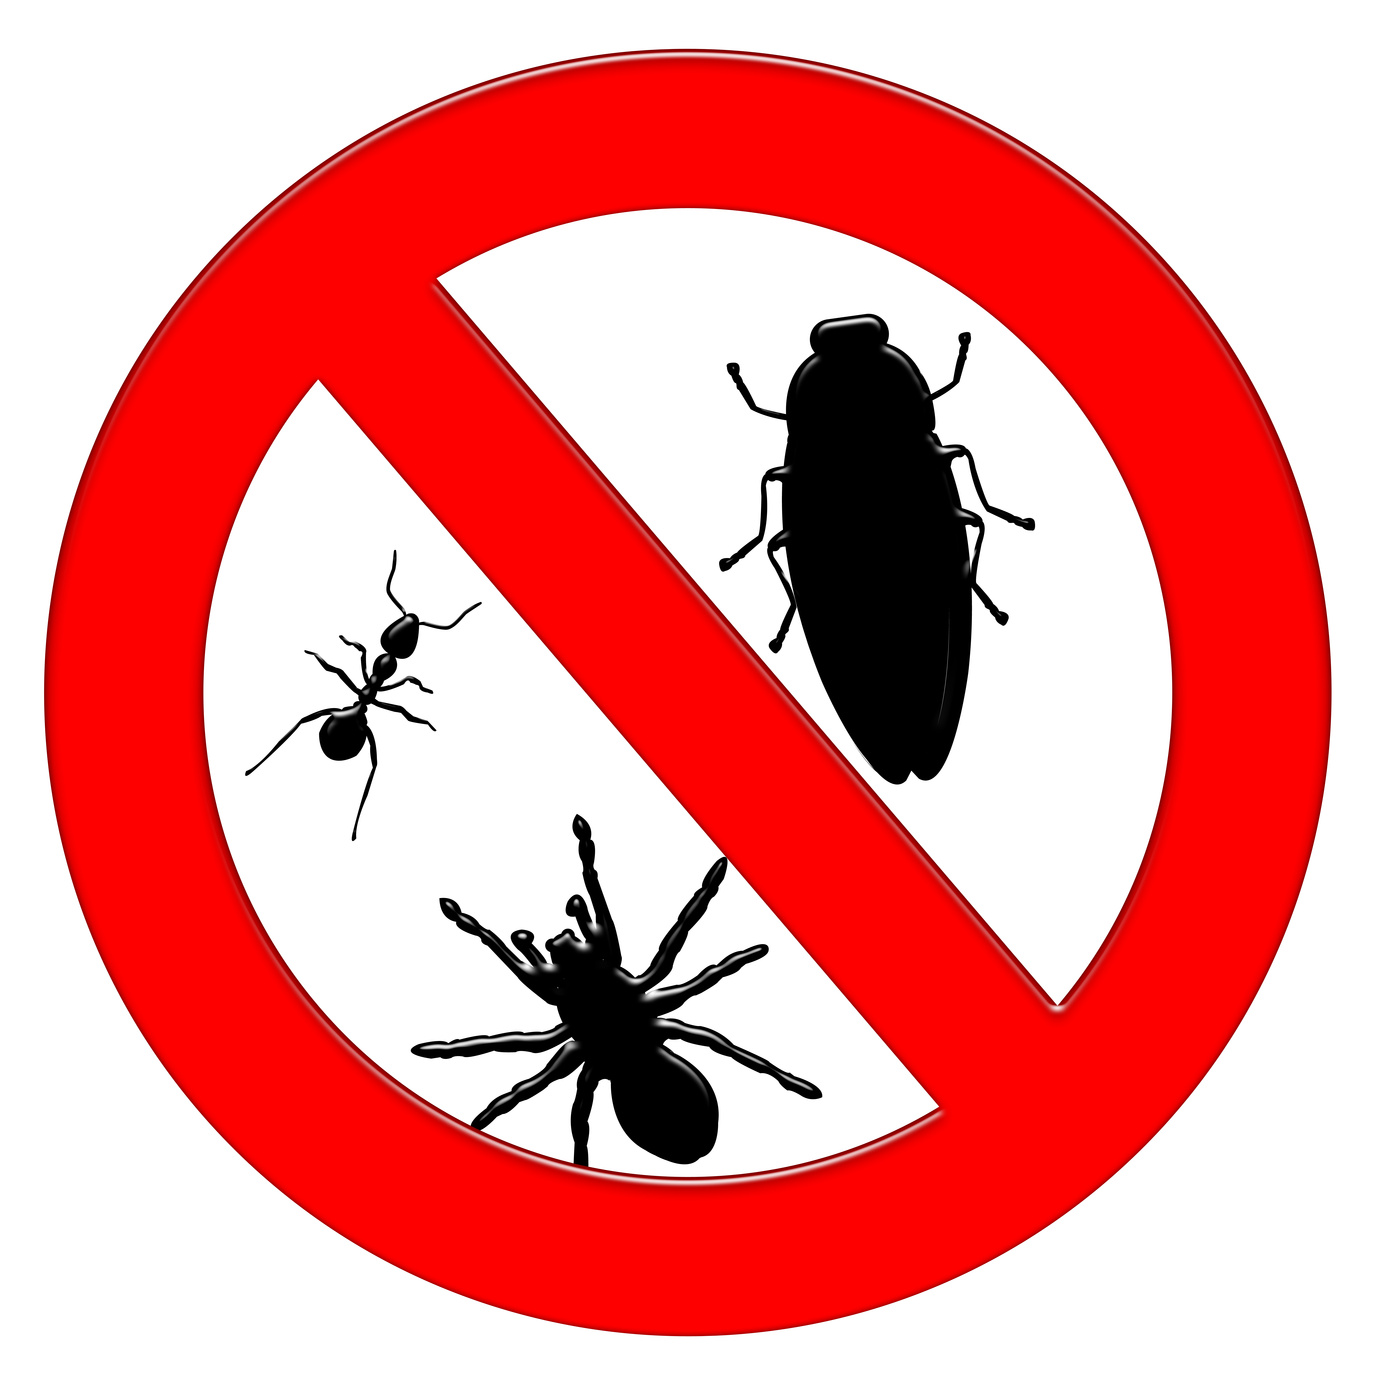 Moisture meters can help find out where pests make their nests so exterminators can eliminate them.